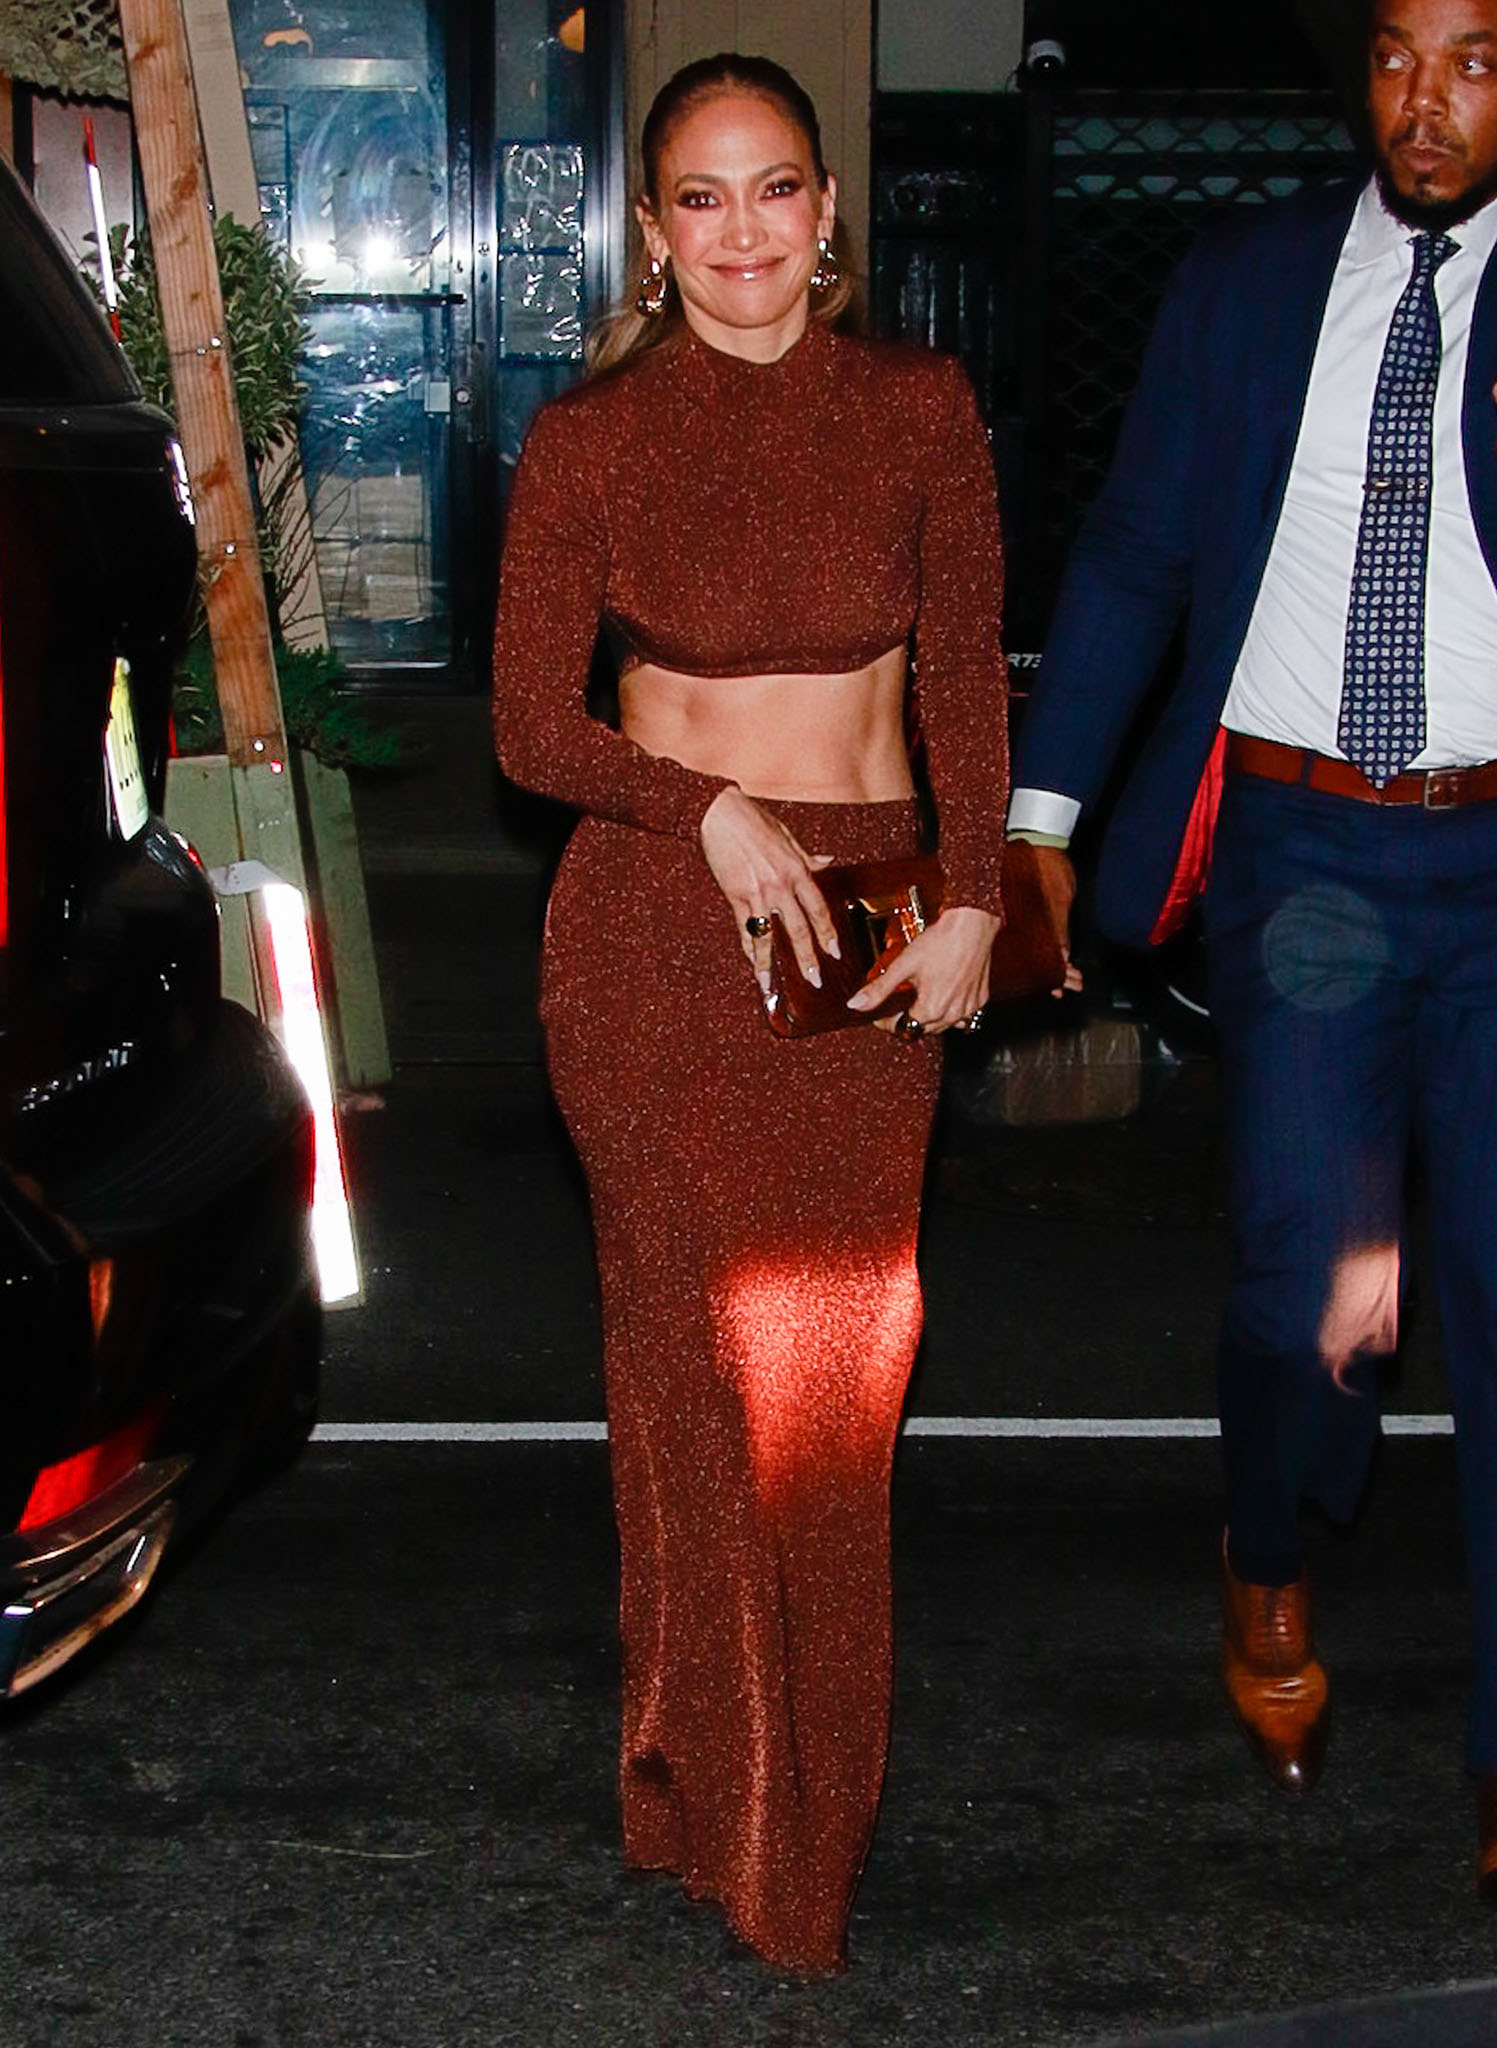 Jennifer Lopez flashes a smile as she shows off her abs in a two-piece Herve Leger Resort 2022 shimmering crop top and skirt